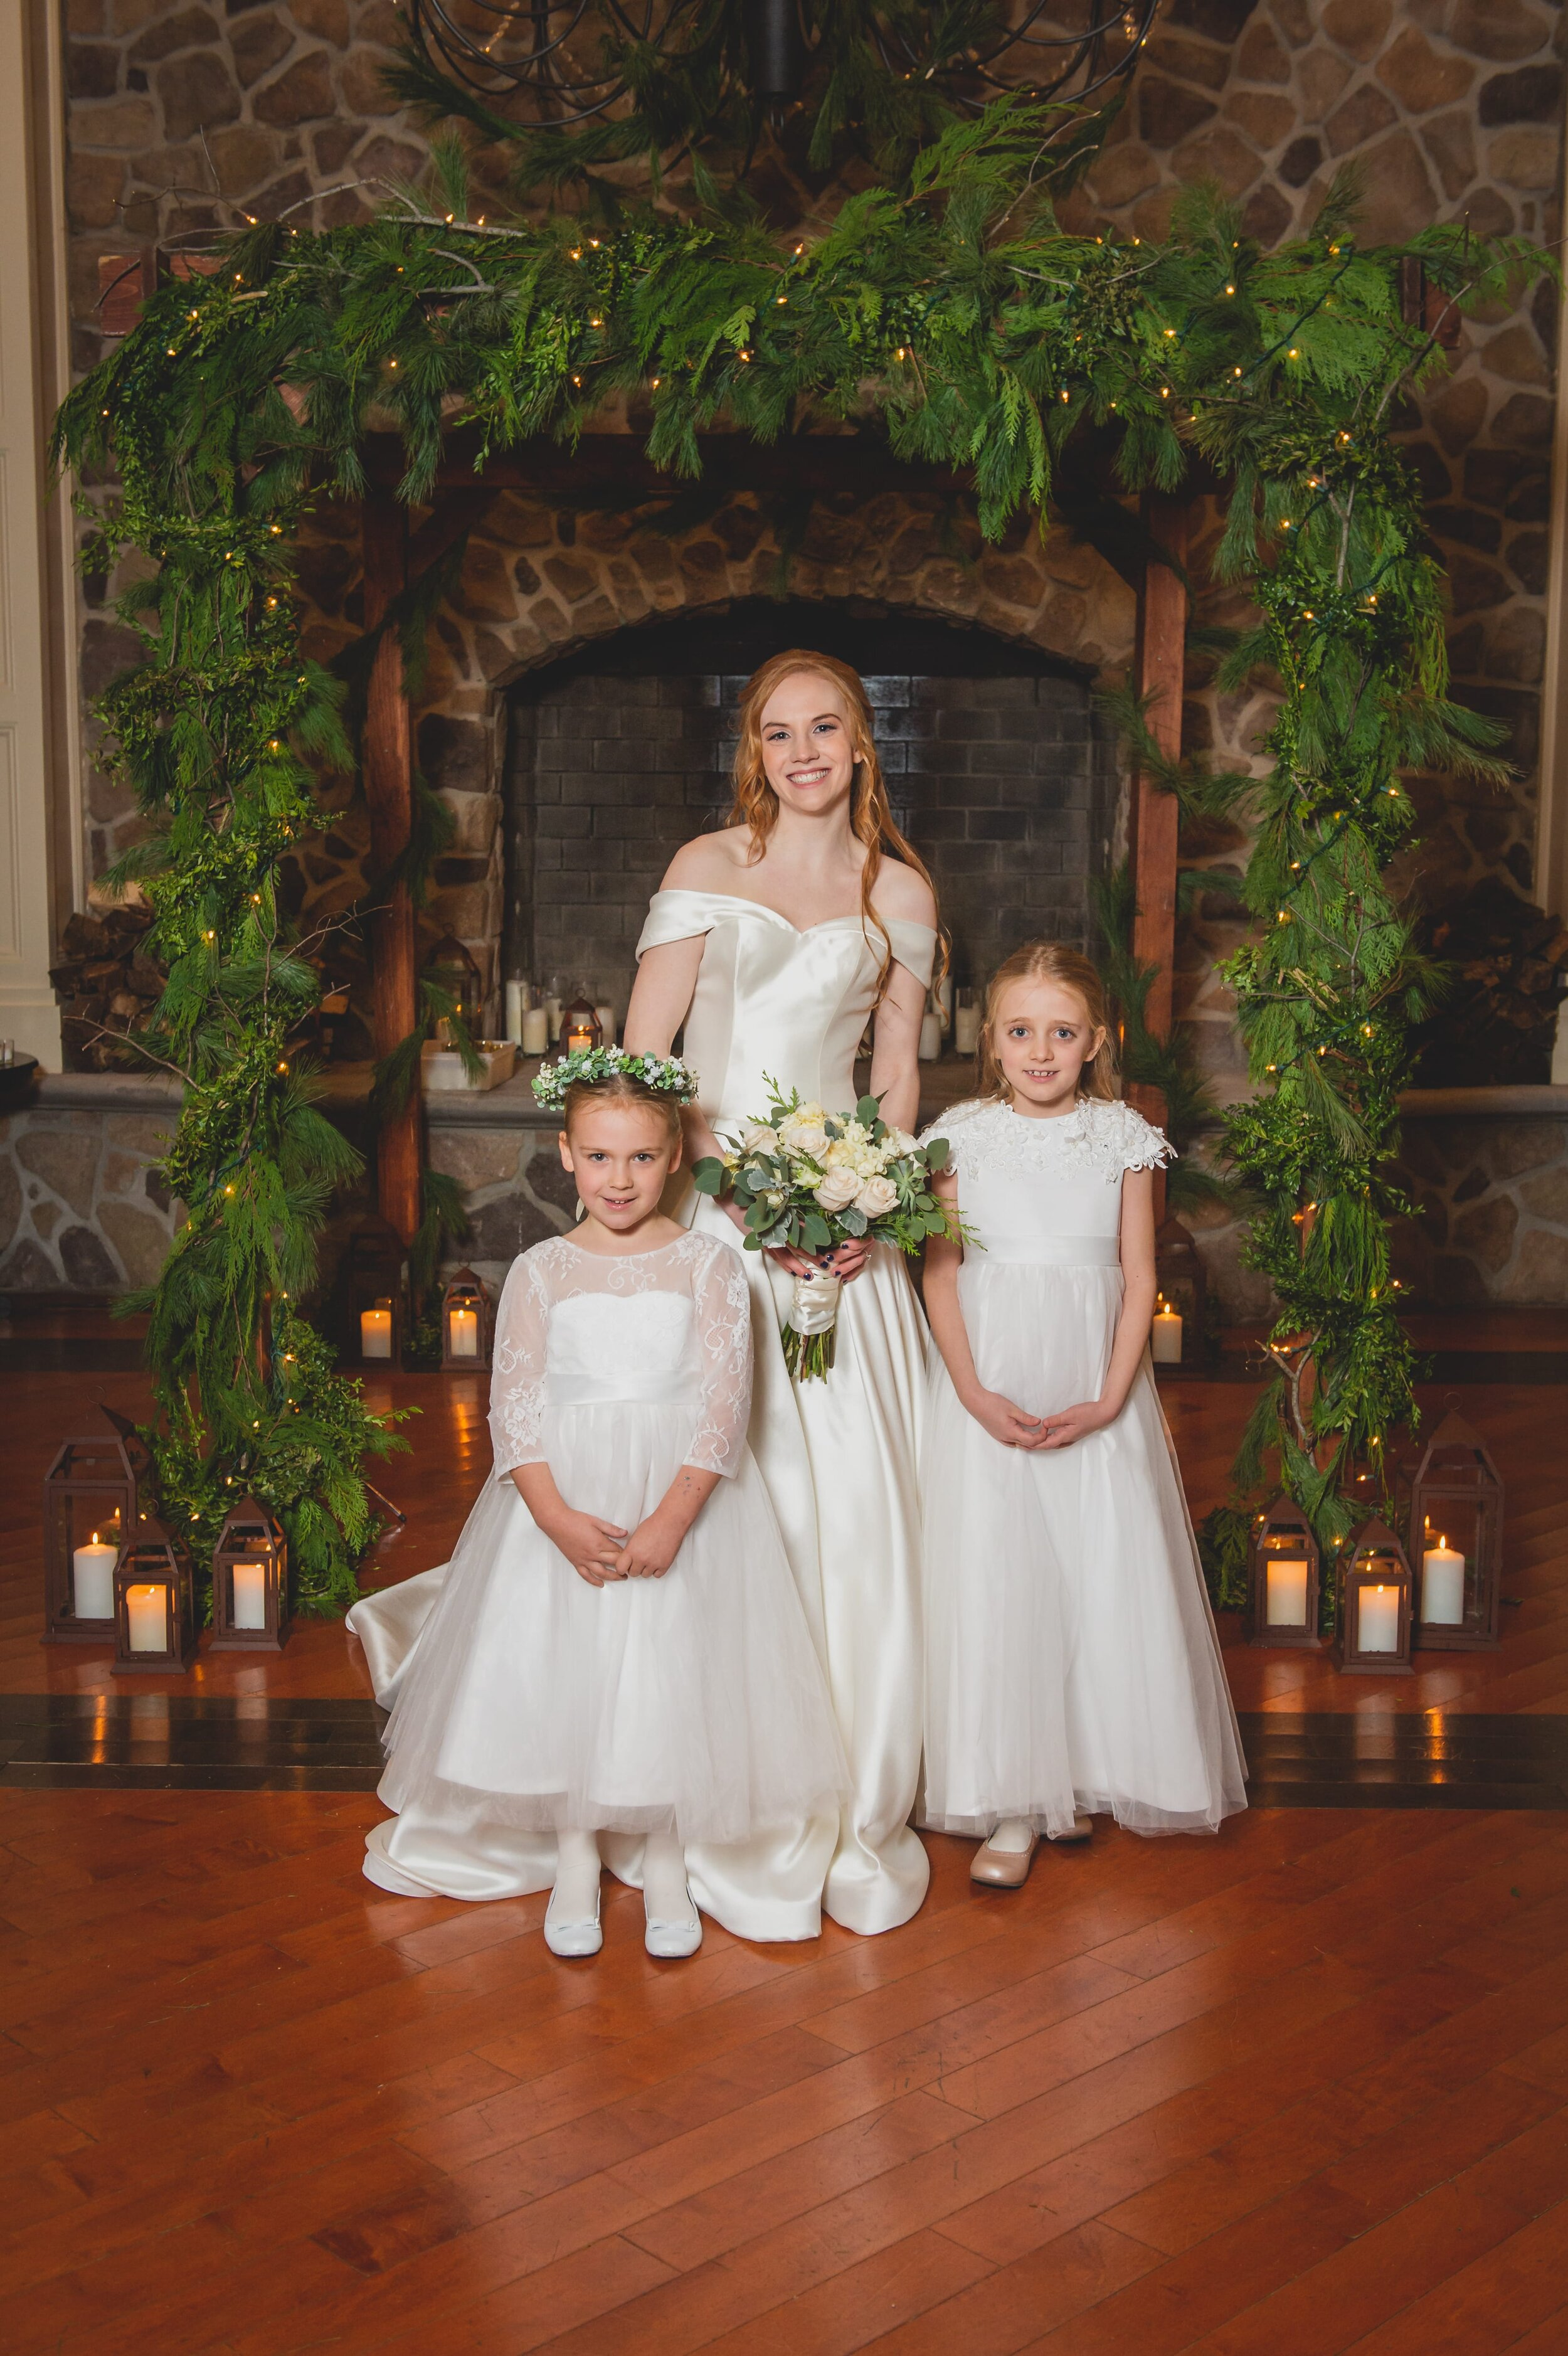 Bride with her 2 young nieces in front of a stone fireplace.